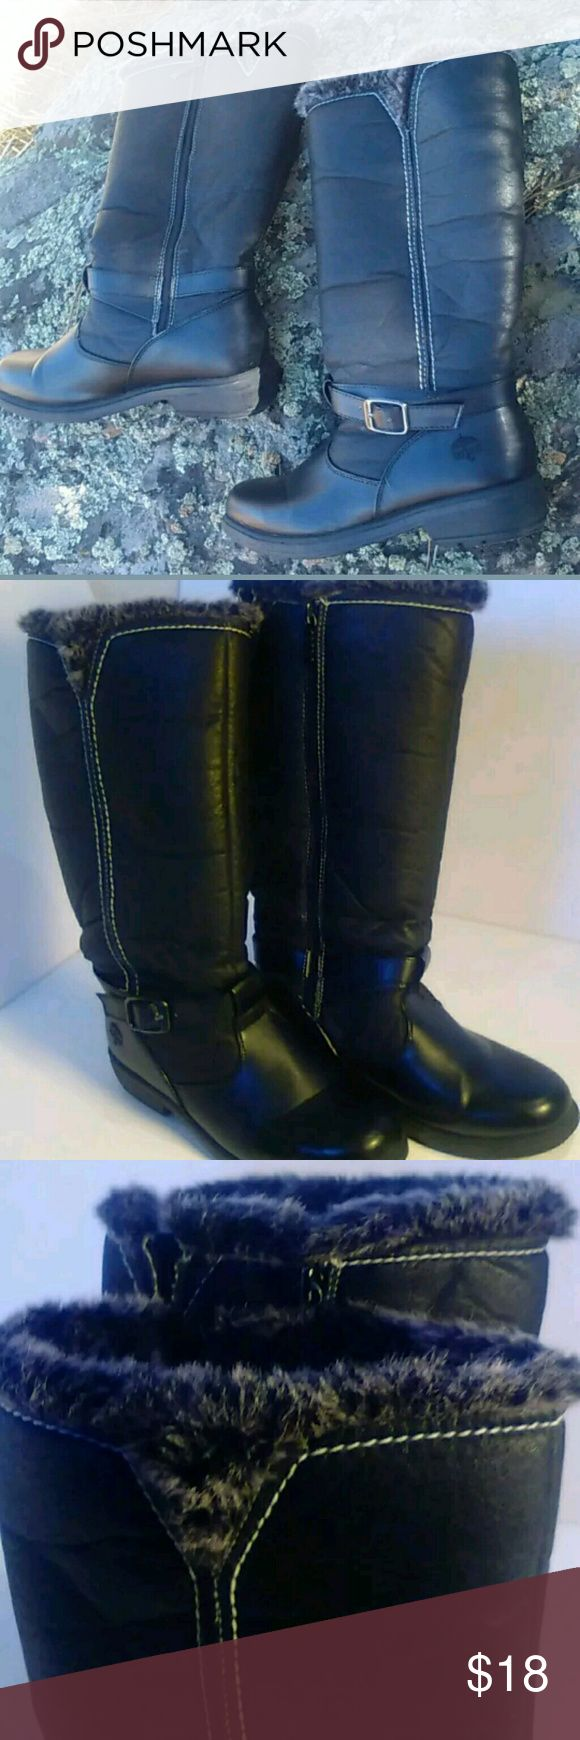 Totes winter boots with fur trim Like new with very minor signs of wear. Insulated and waterproof. Totes Shoes Winter & Rain Boots